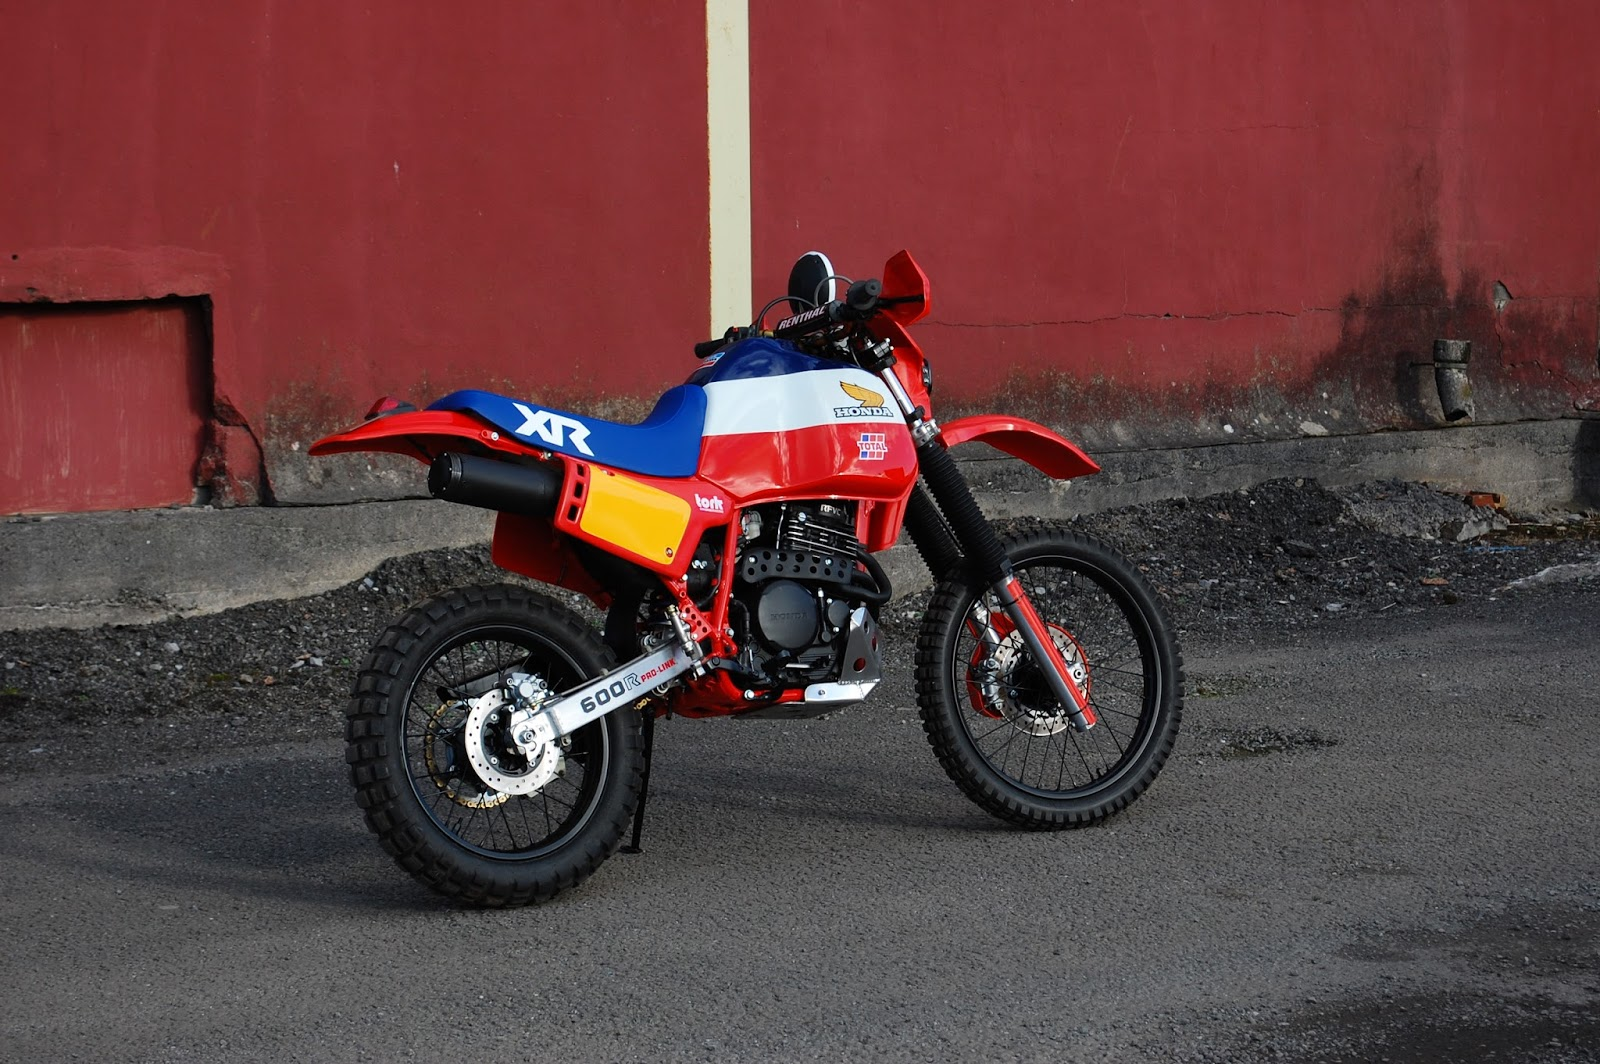 Honda Nx650 Dominator Streettracker Project